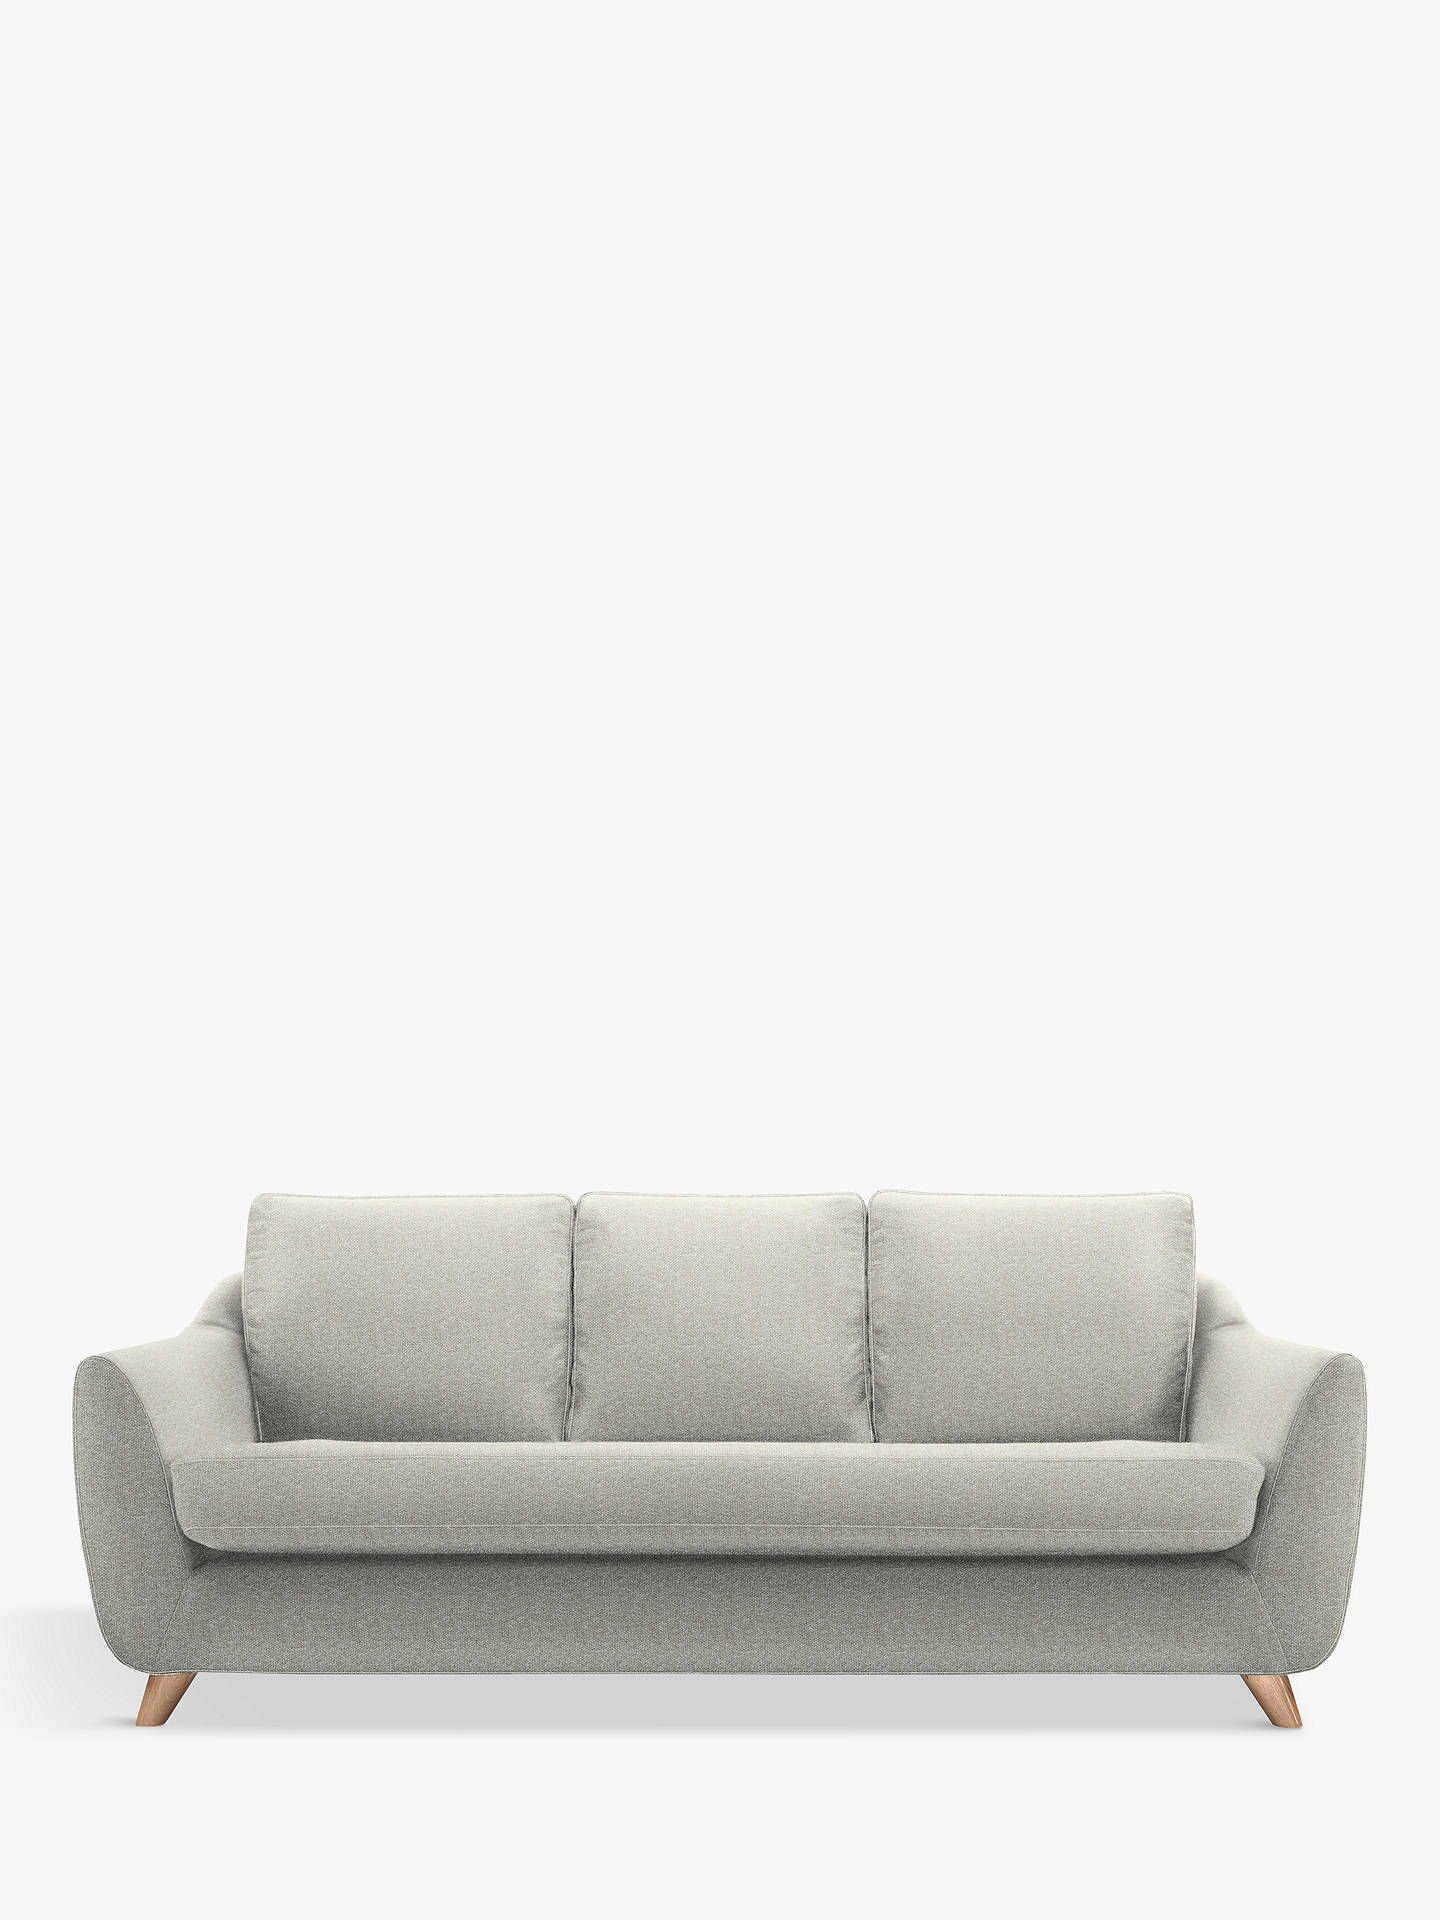 Buy G Plan Vintage The Sixty Seven Large 3 Seater Sofa, Sherbert Cloud Online at johnlewis.com